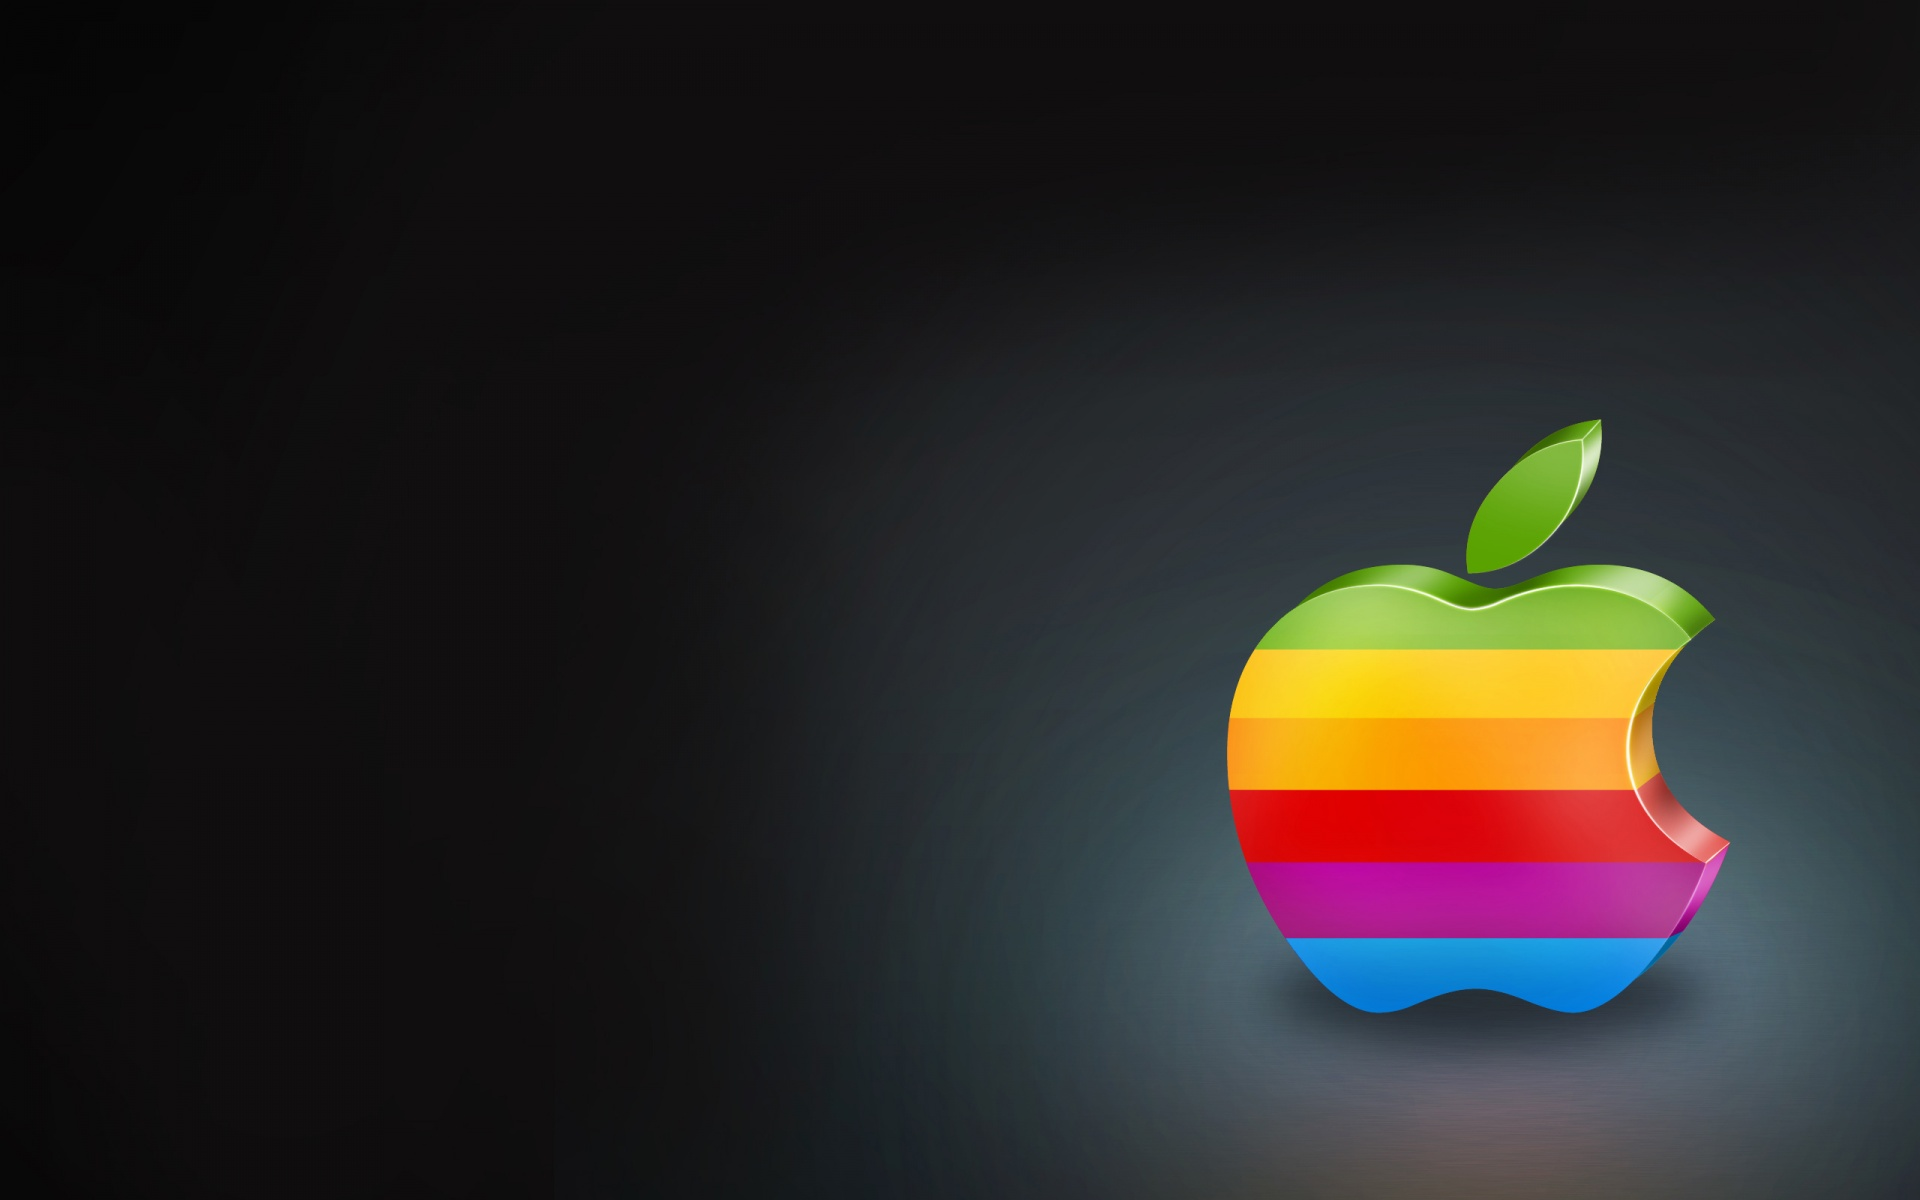 1920x1200 Apple retro style 1920 1200   Wallpapers 1920x1200